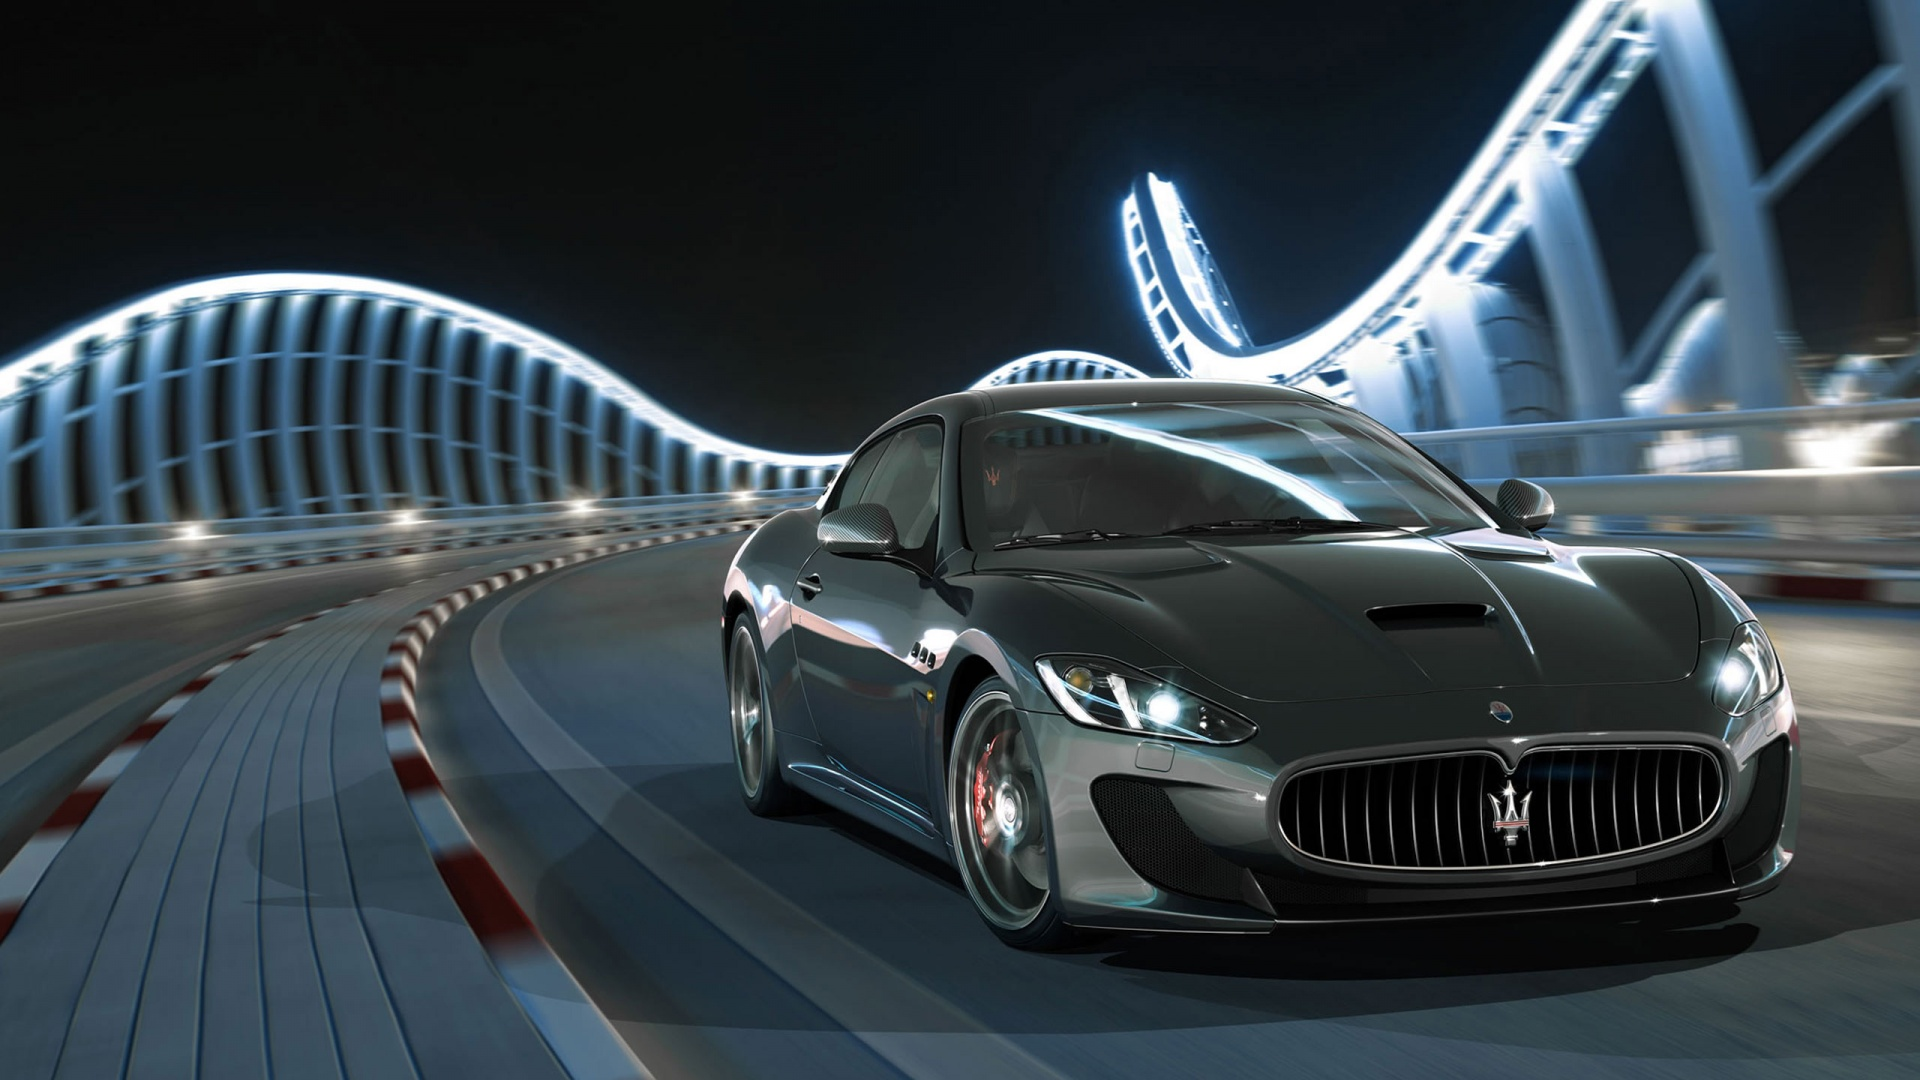 New Cars Wallpapers 2014 HD